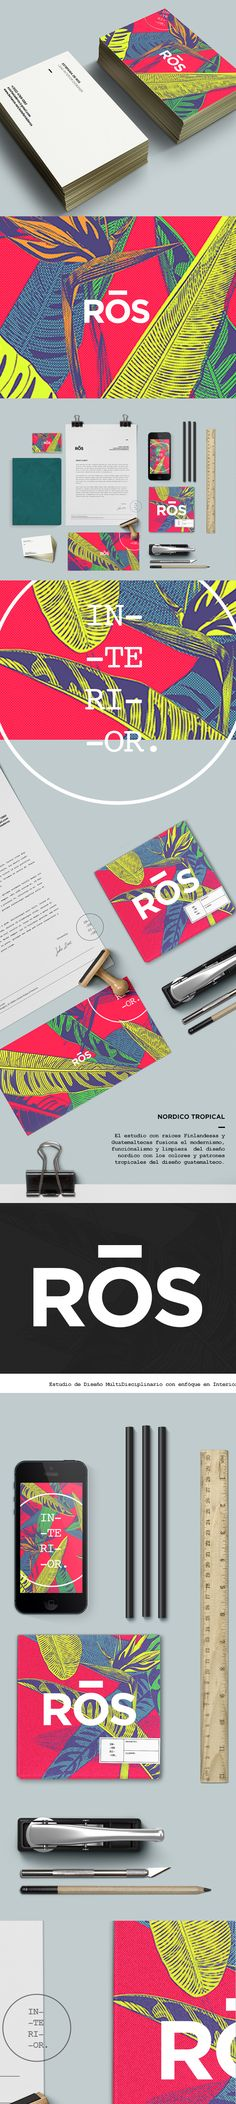 Ros Interior Design by Gustavo Quintana, via Behance